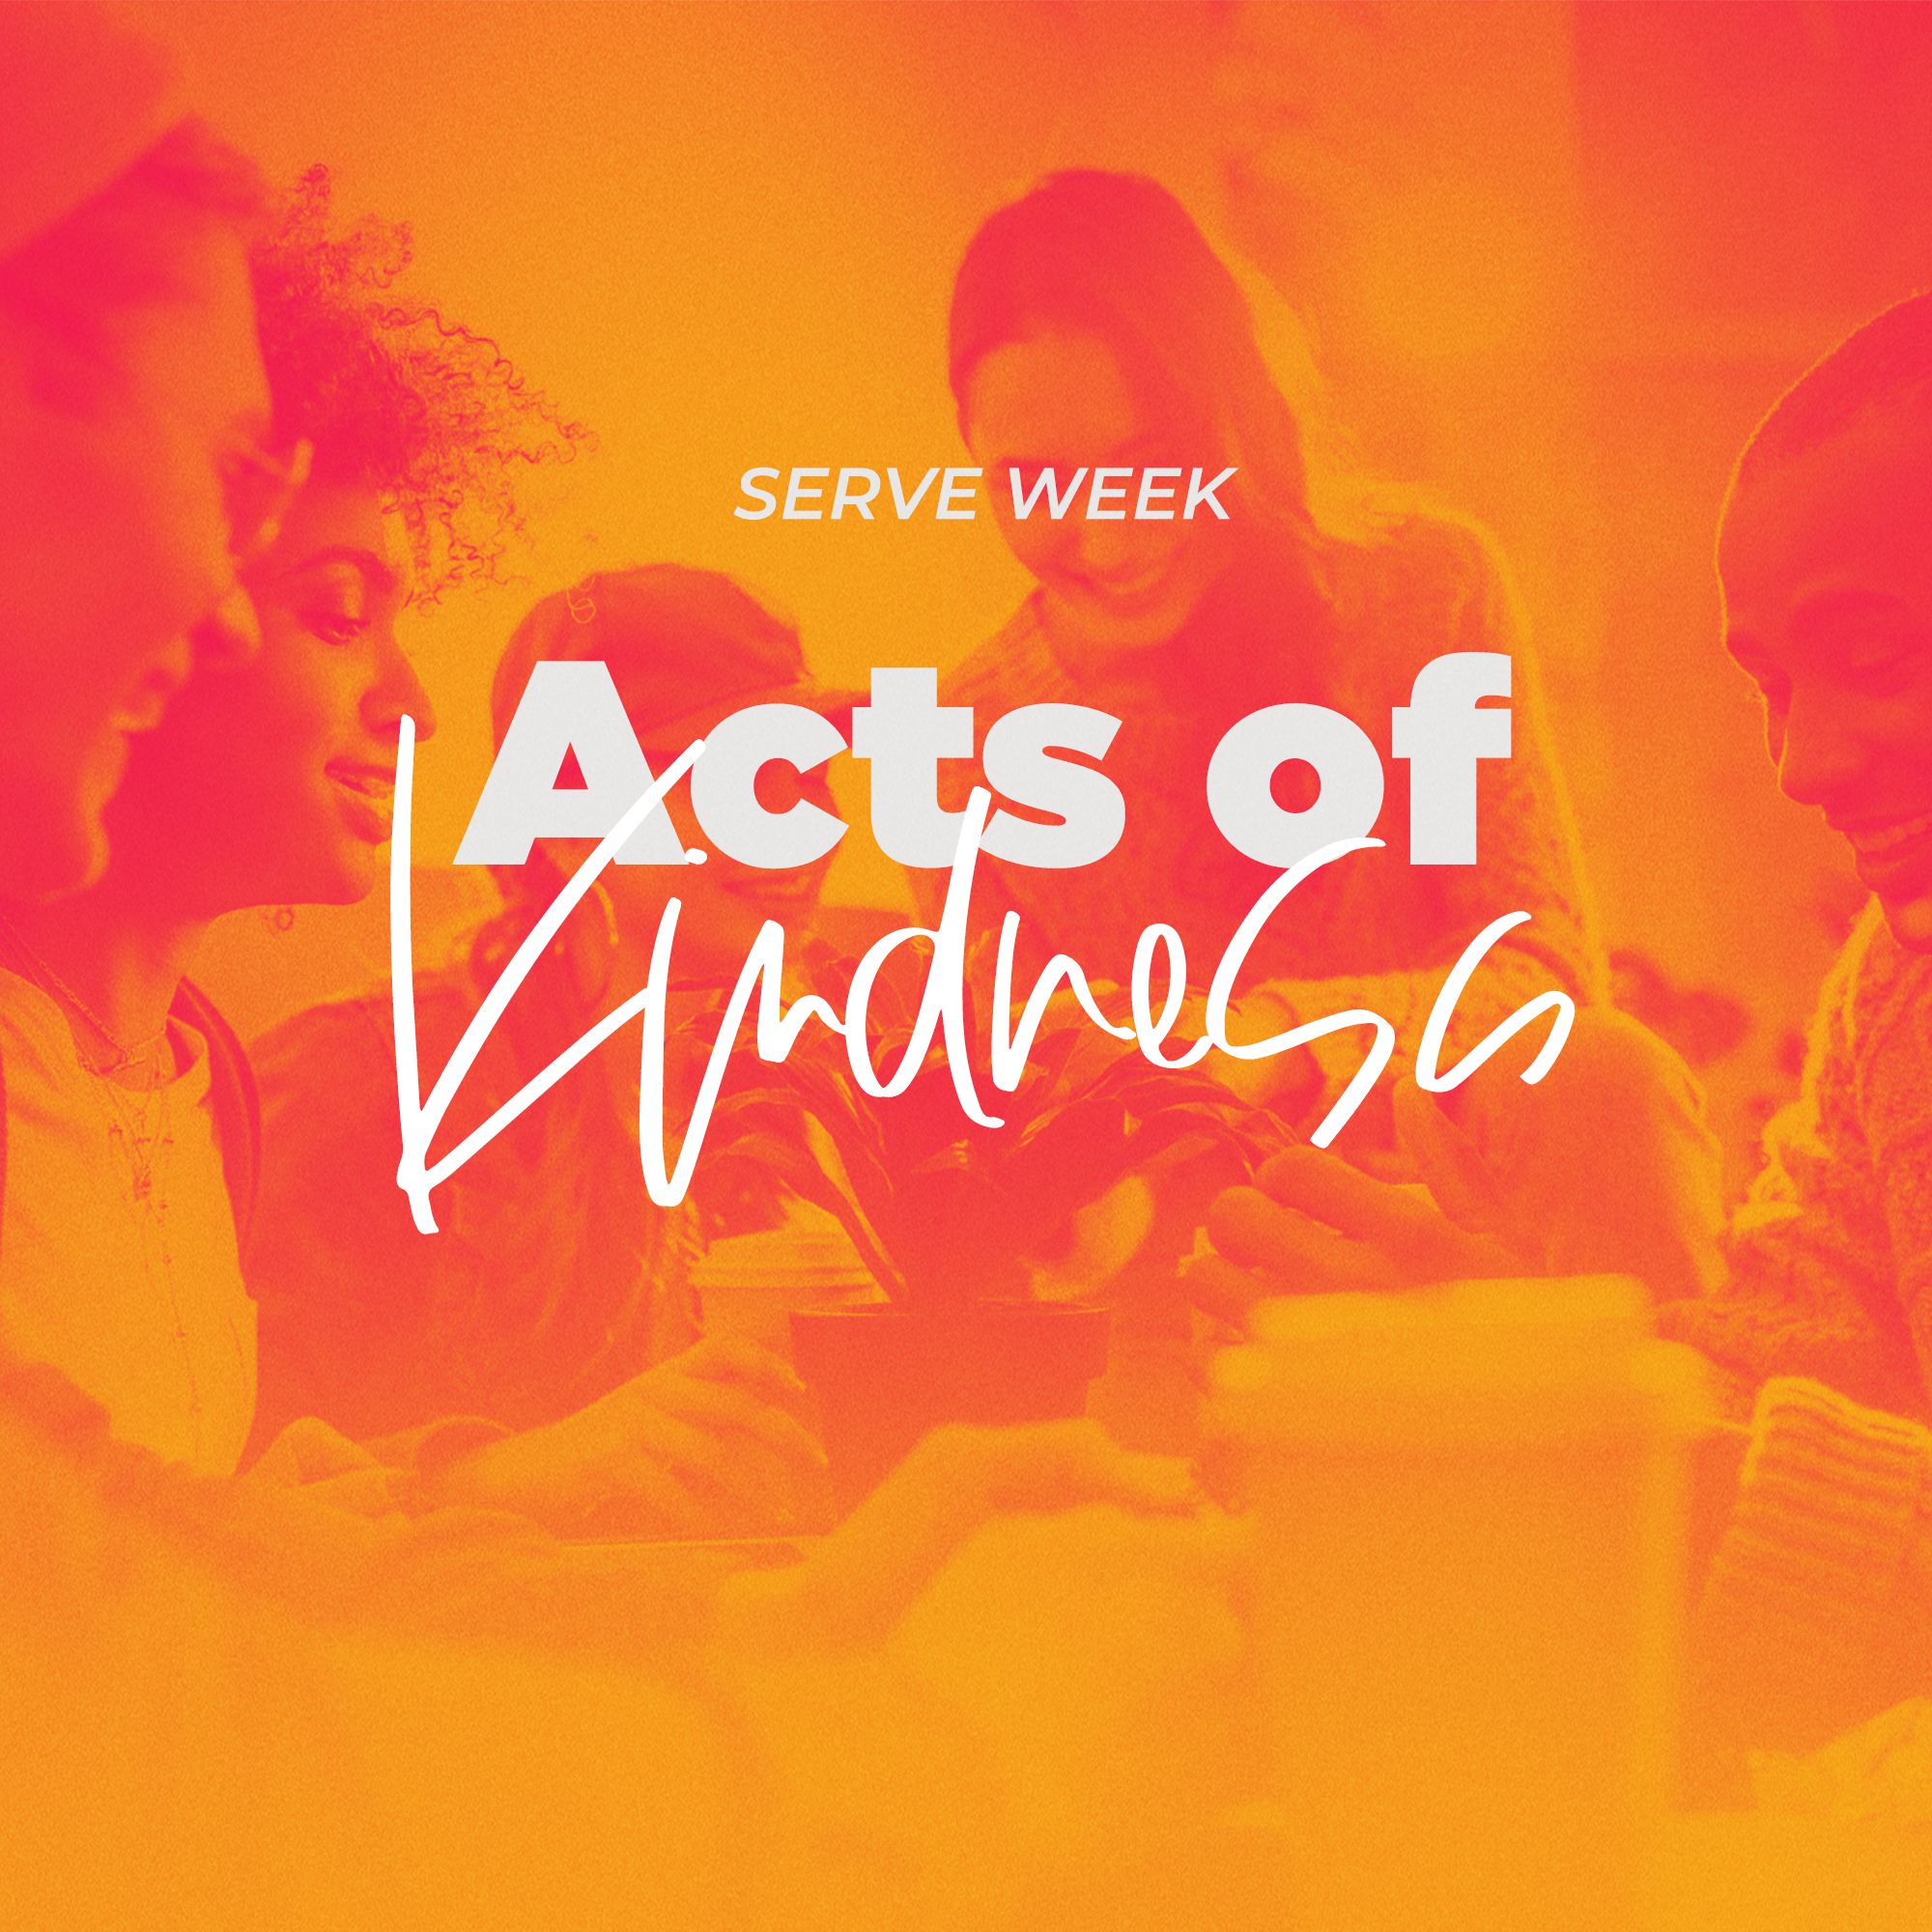 acts of kindness image